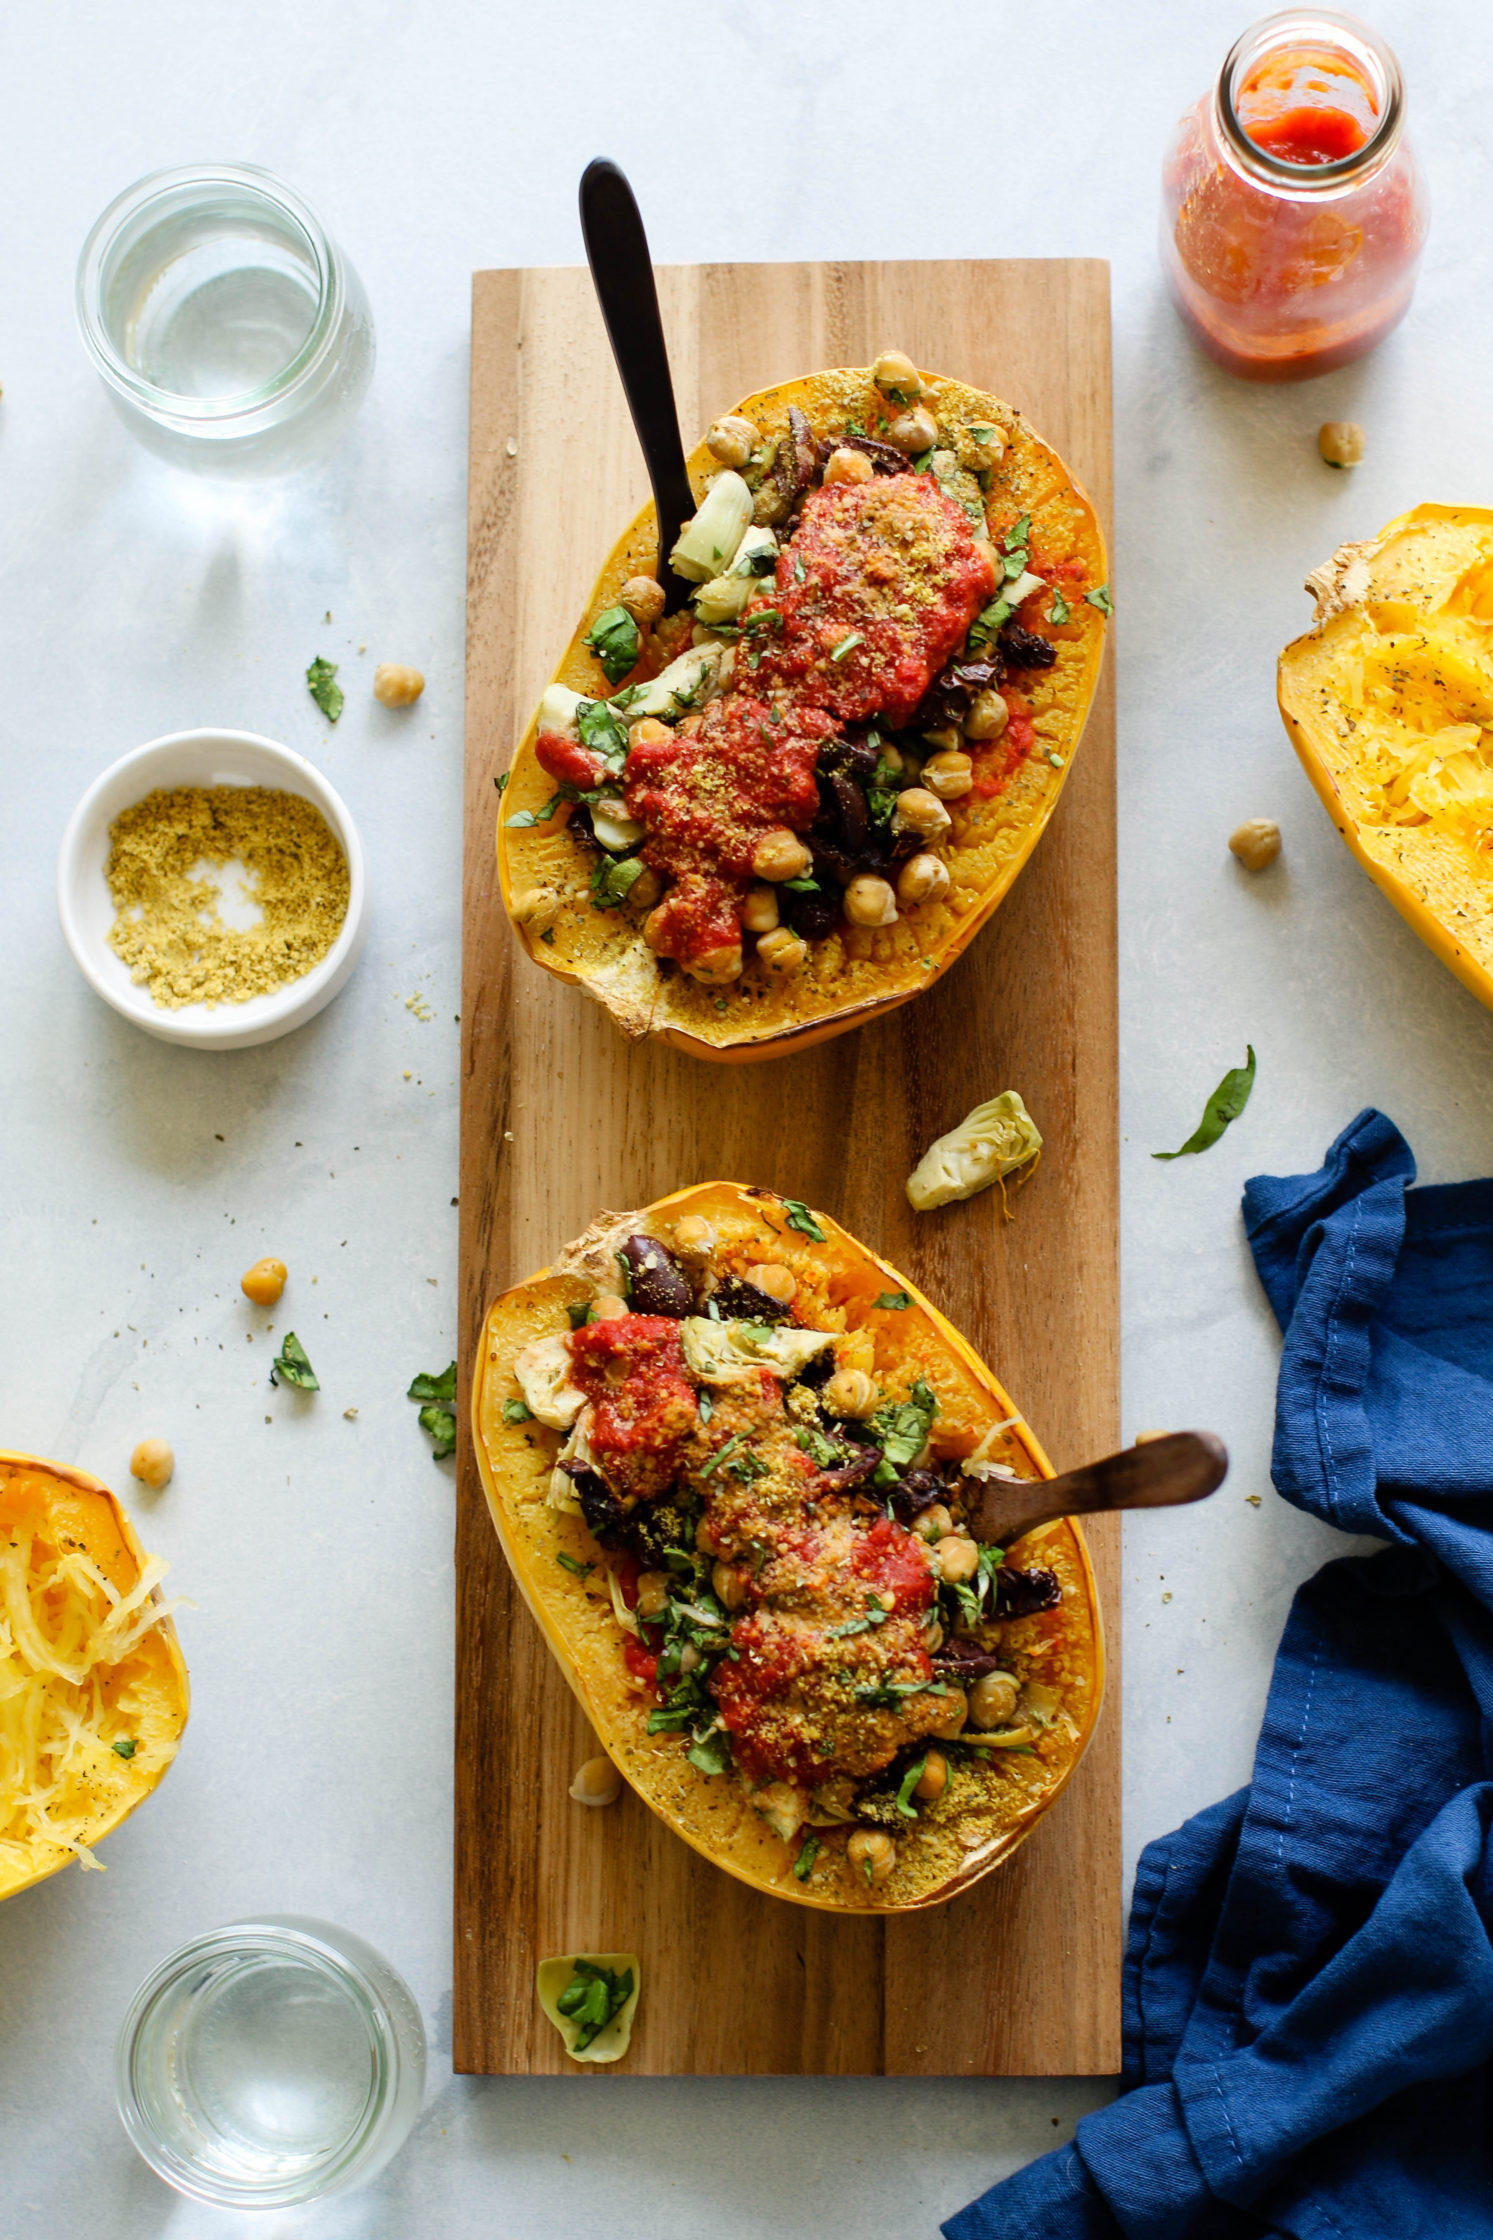 Meal Prep Double Baked Greek Spaghetti Squash by Flora & Vino